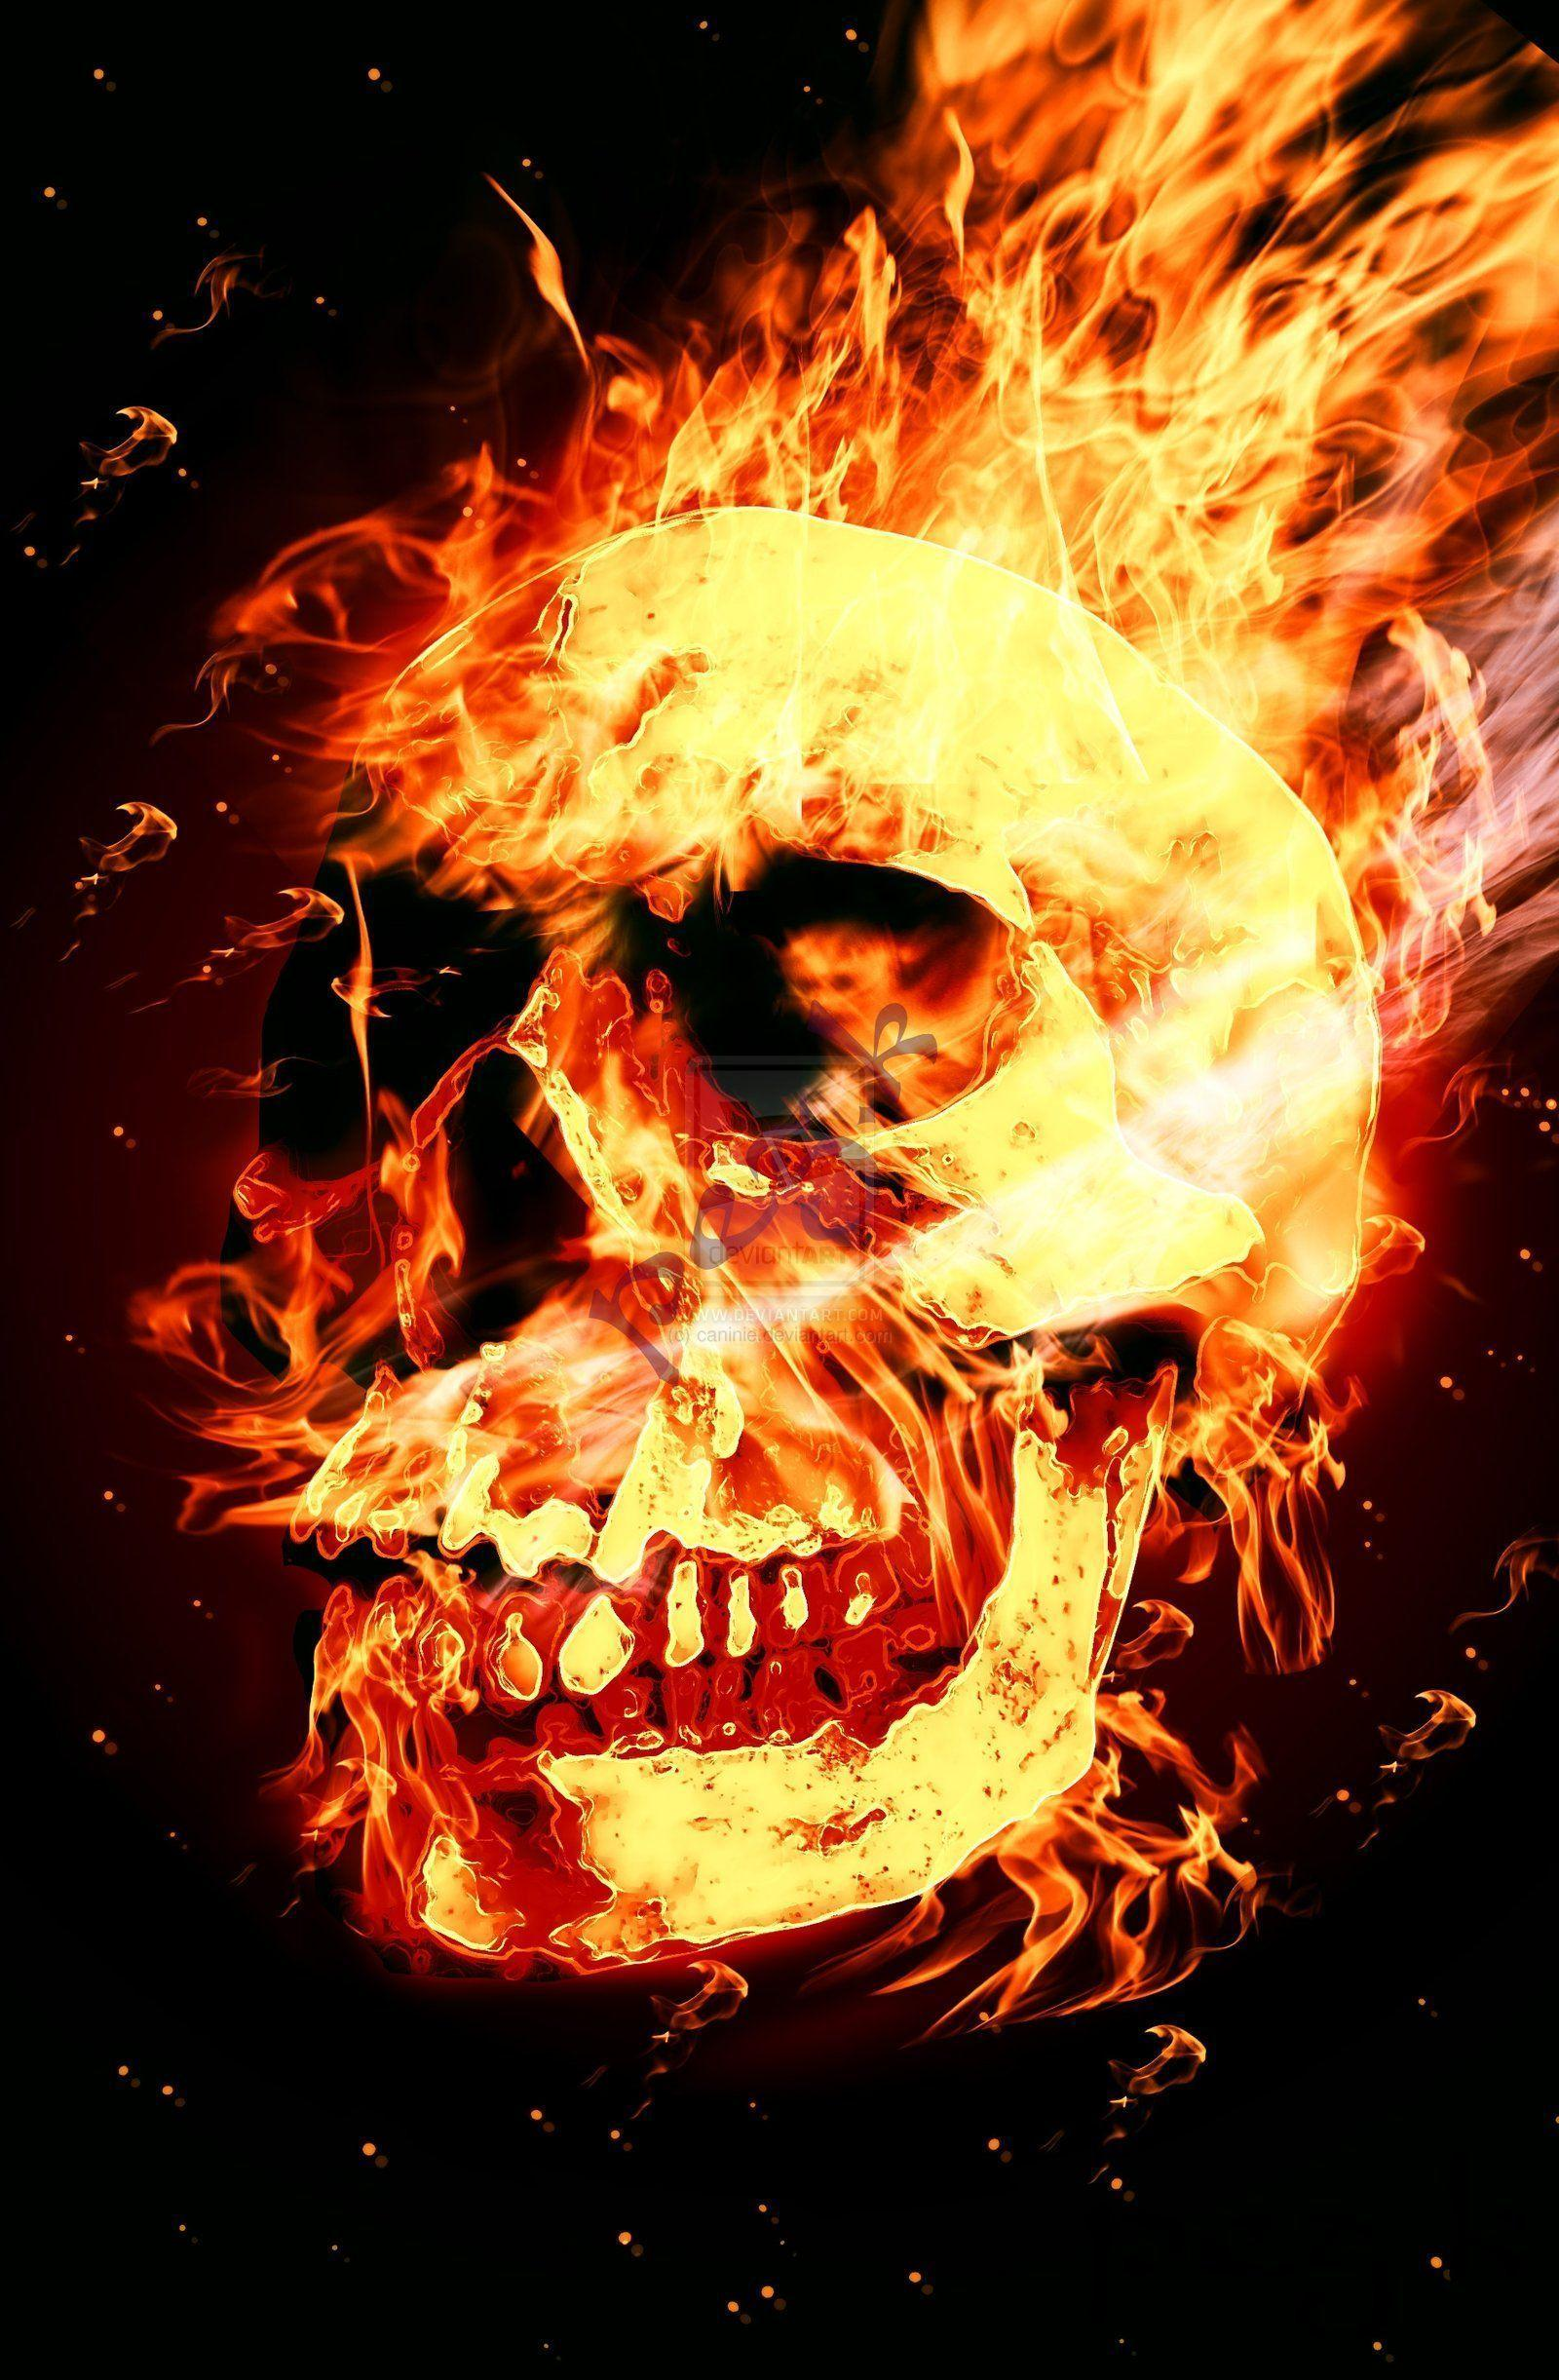 Fire Skull Pics, wallpaper, Fire Skull Pics hd wallpapers